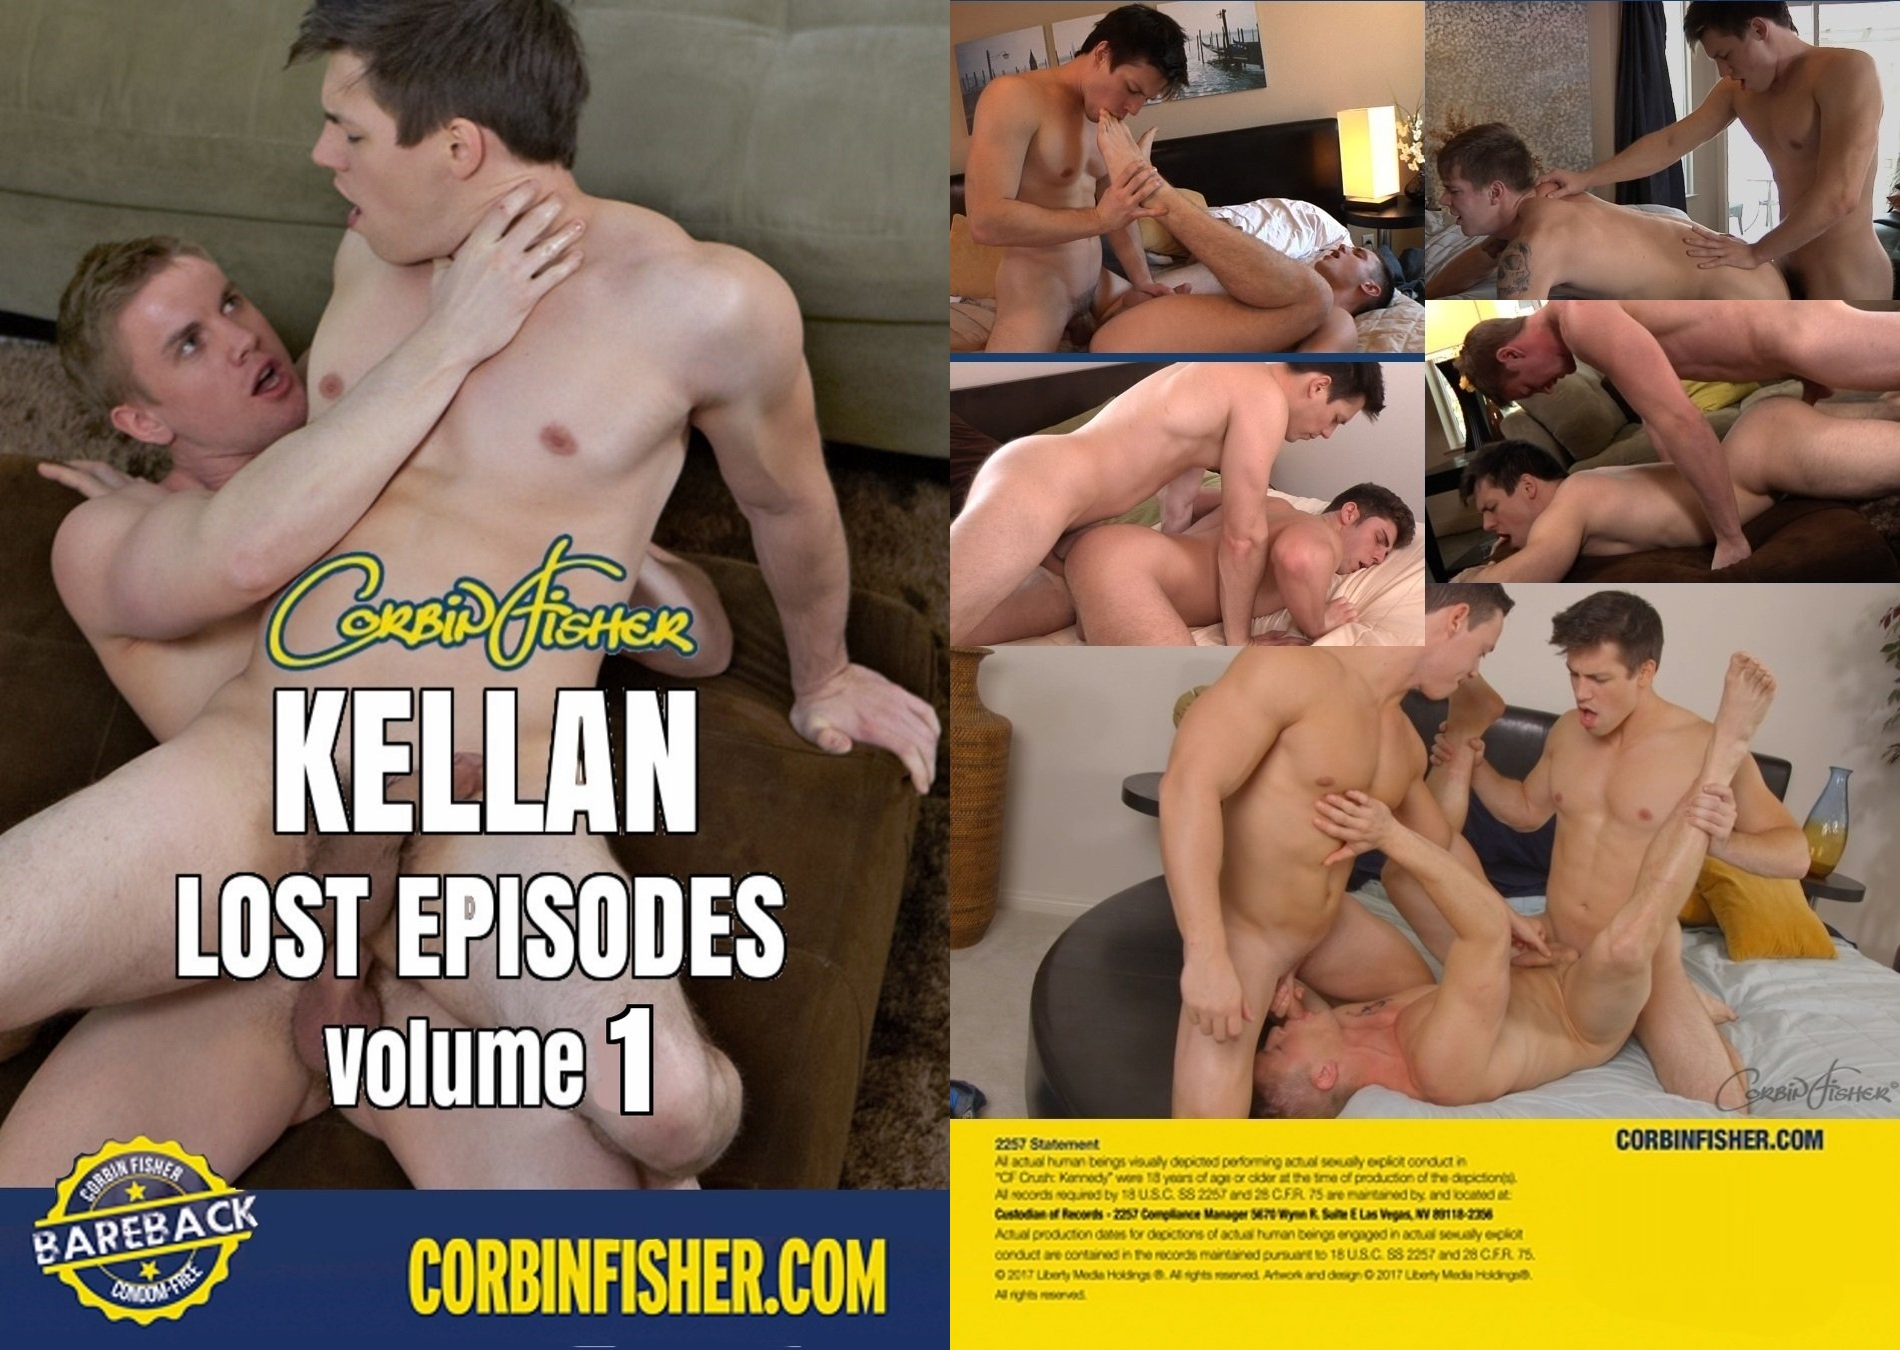 CorbinFisher – Kellan Lost Episodes Volume 1